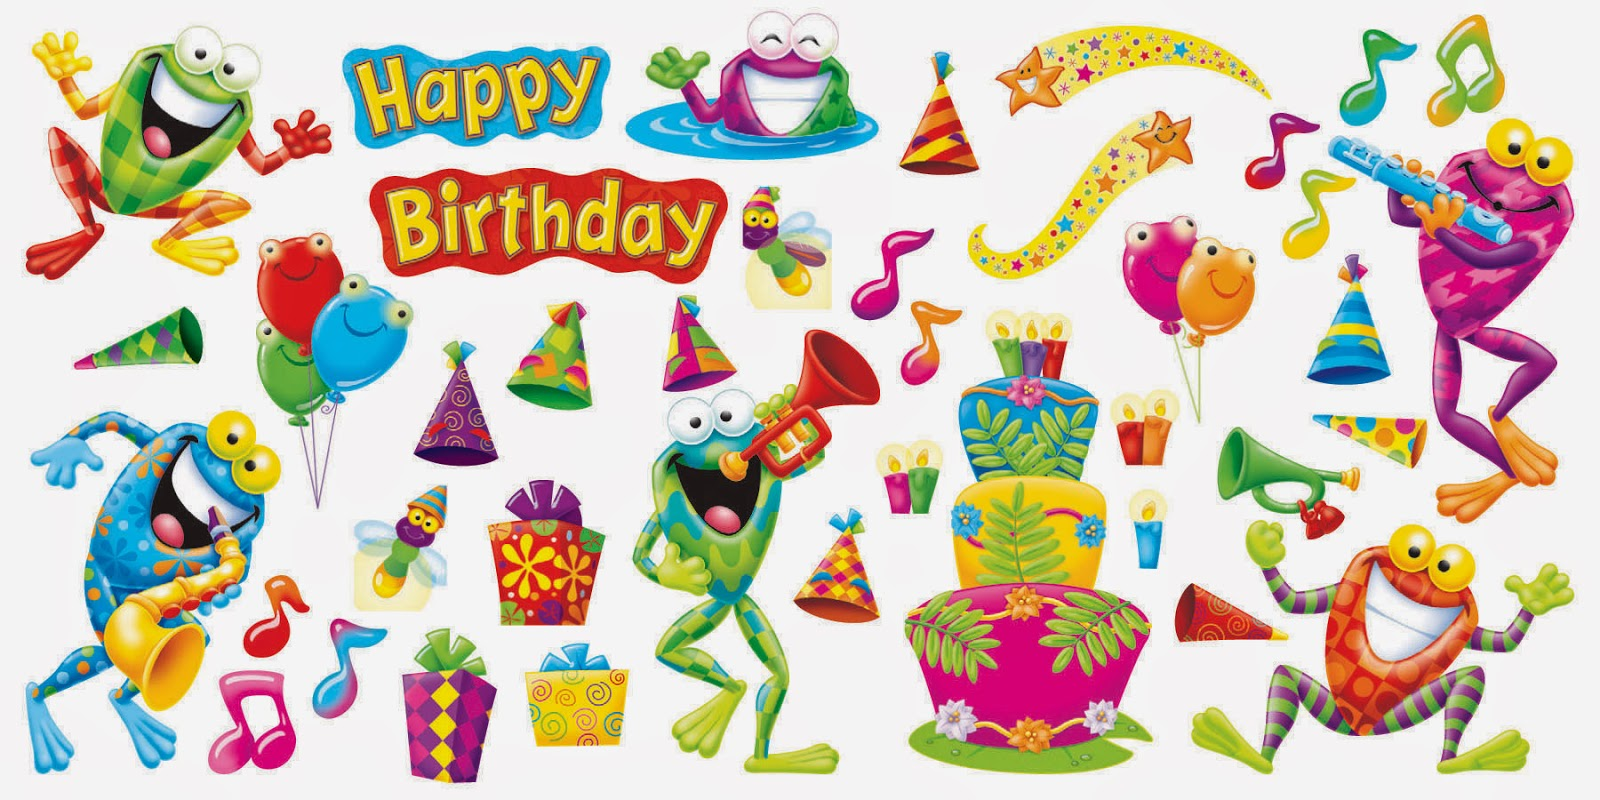 clipart for birthday wishes ; Birthday-clipart-images-pictures-hd-free-download-for-pc-desktop-1800x900